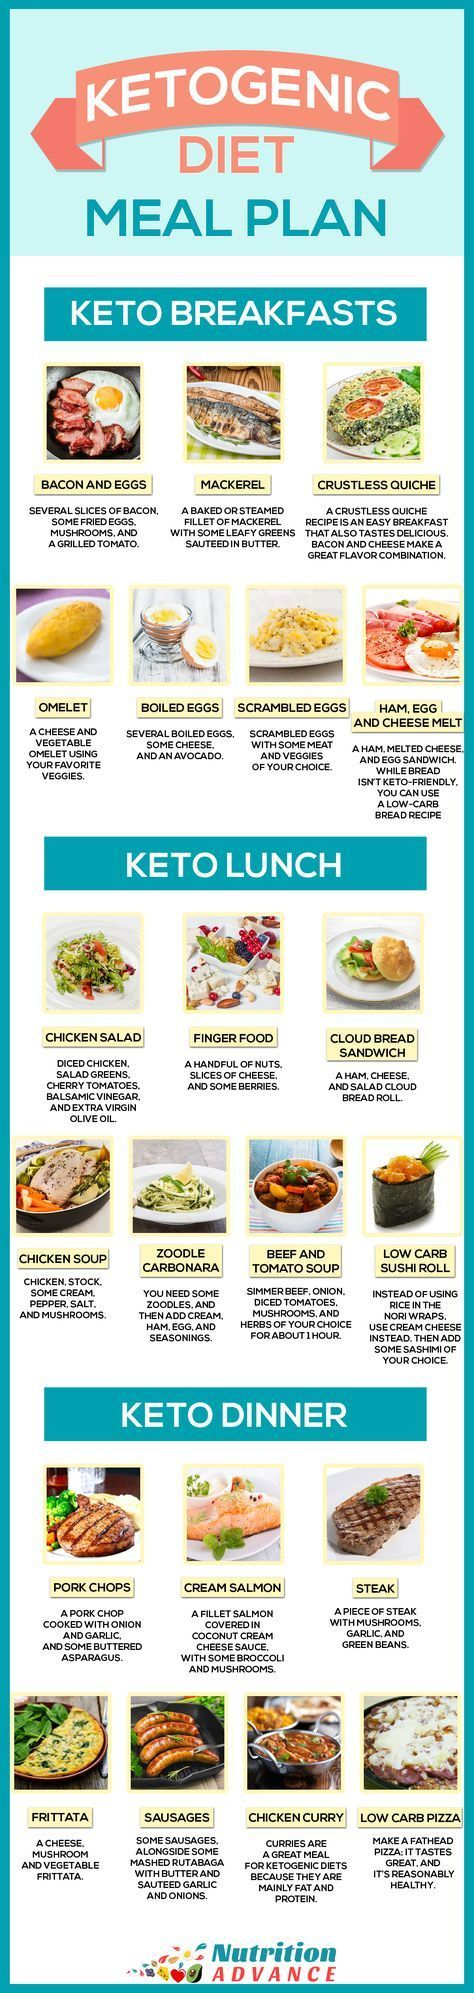 Ketogenic Diet Meal Plan For 7 Days - This infographic shows some ideas for a keto breakfast, lunch, and dinner. All meals are very low in carbs but high in essential vitamins and minerals, and other health-protective nutrients. The ketogenic diet is one